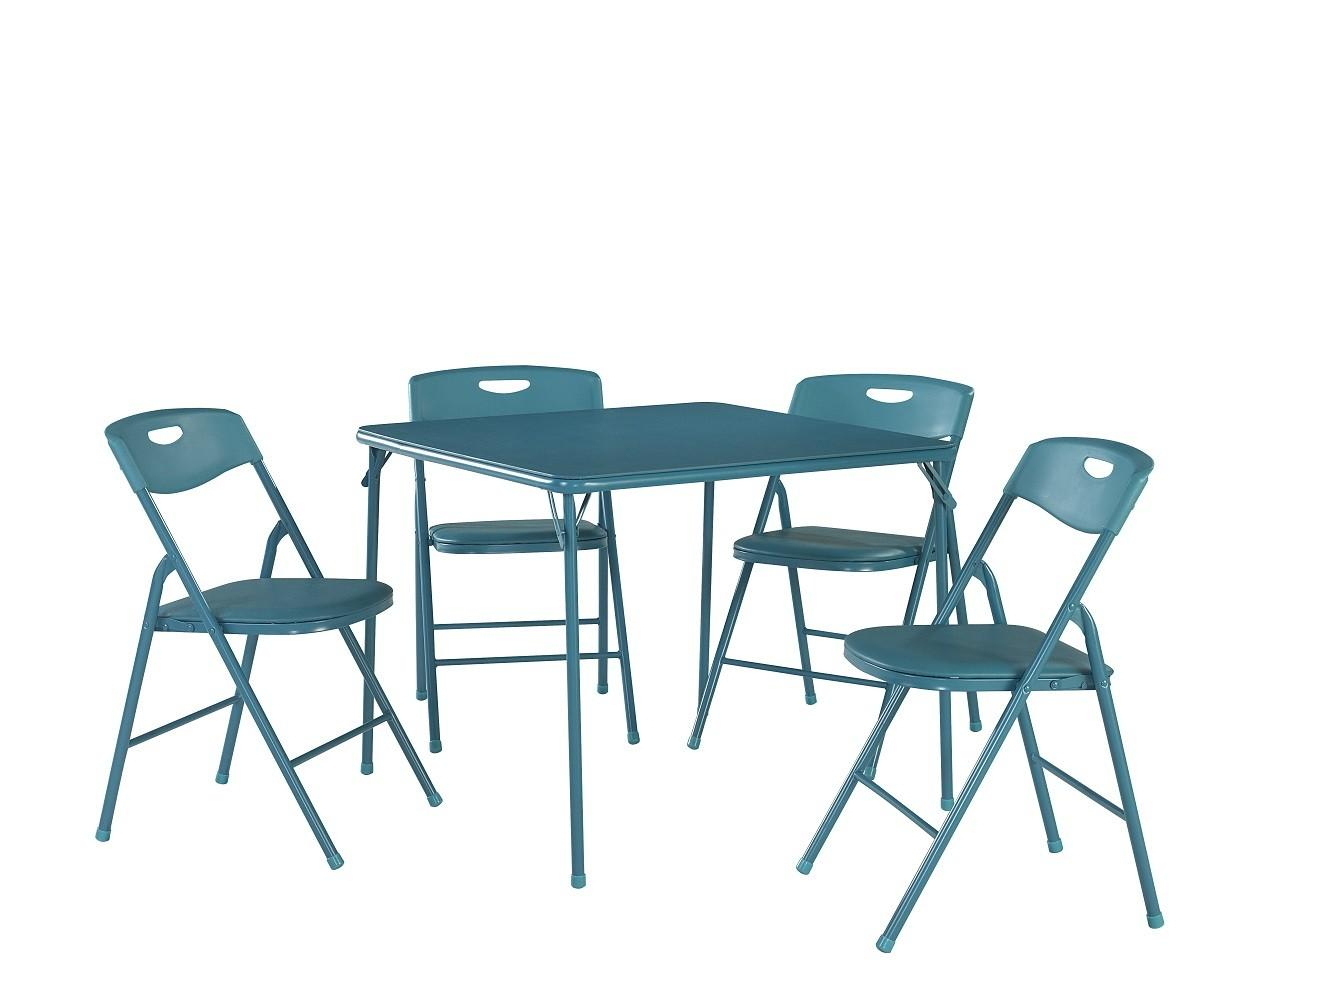 Amazoncom Cosco Products 5 Piece Folding Table and Chair  : 2b3ee207 b417 4f54 ab3c 0c32ea10327fjpgCB322397009 from www.amazon.com size 1332 x 1000 jpeg 76kB